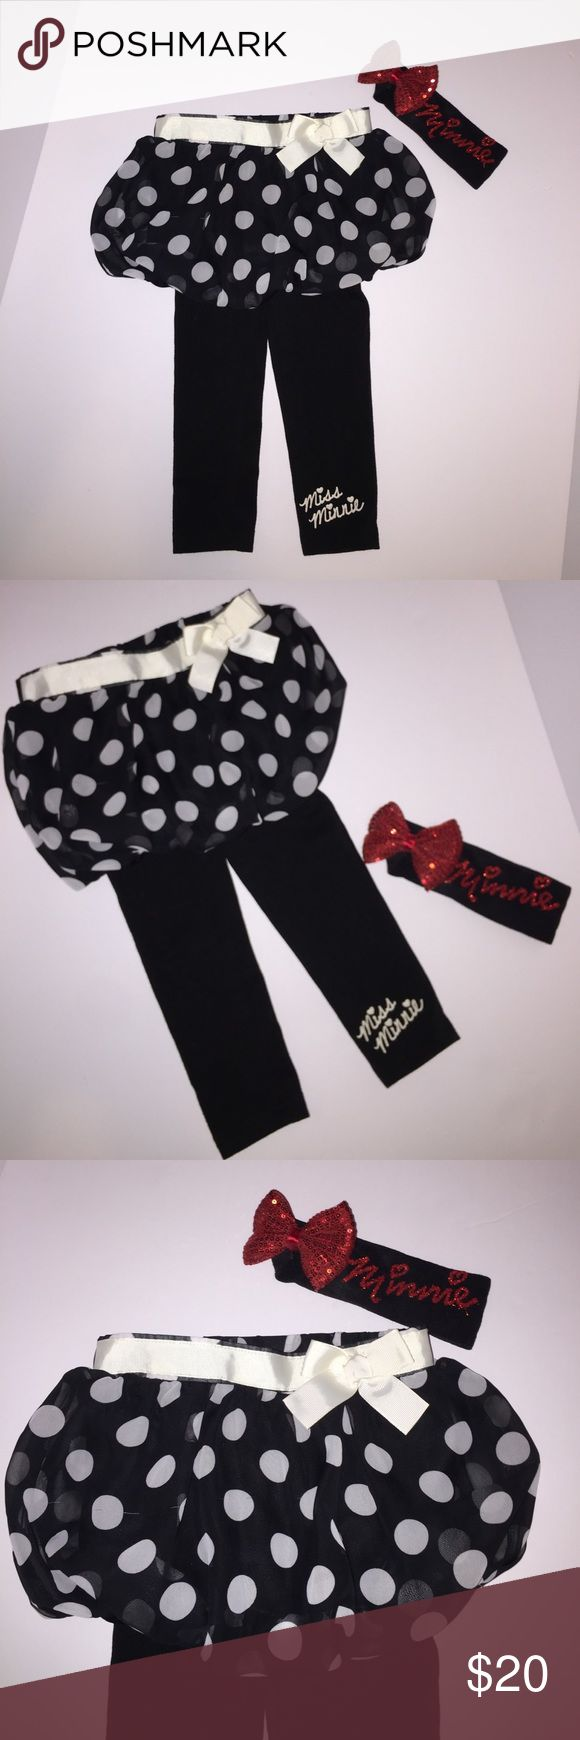 Minnie Mouse Bubble Skirt/leggings Minnie Bow 3T Disney Minnie Mouse Bubble Skirt with attached leggings size 3T and Matching Minnie Headband Bow. super cute!! Great Condition! Disney Bottoms Skirts